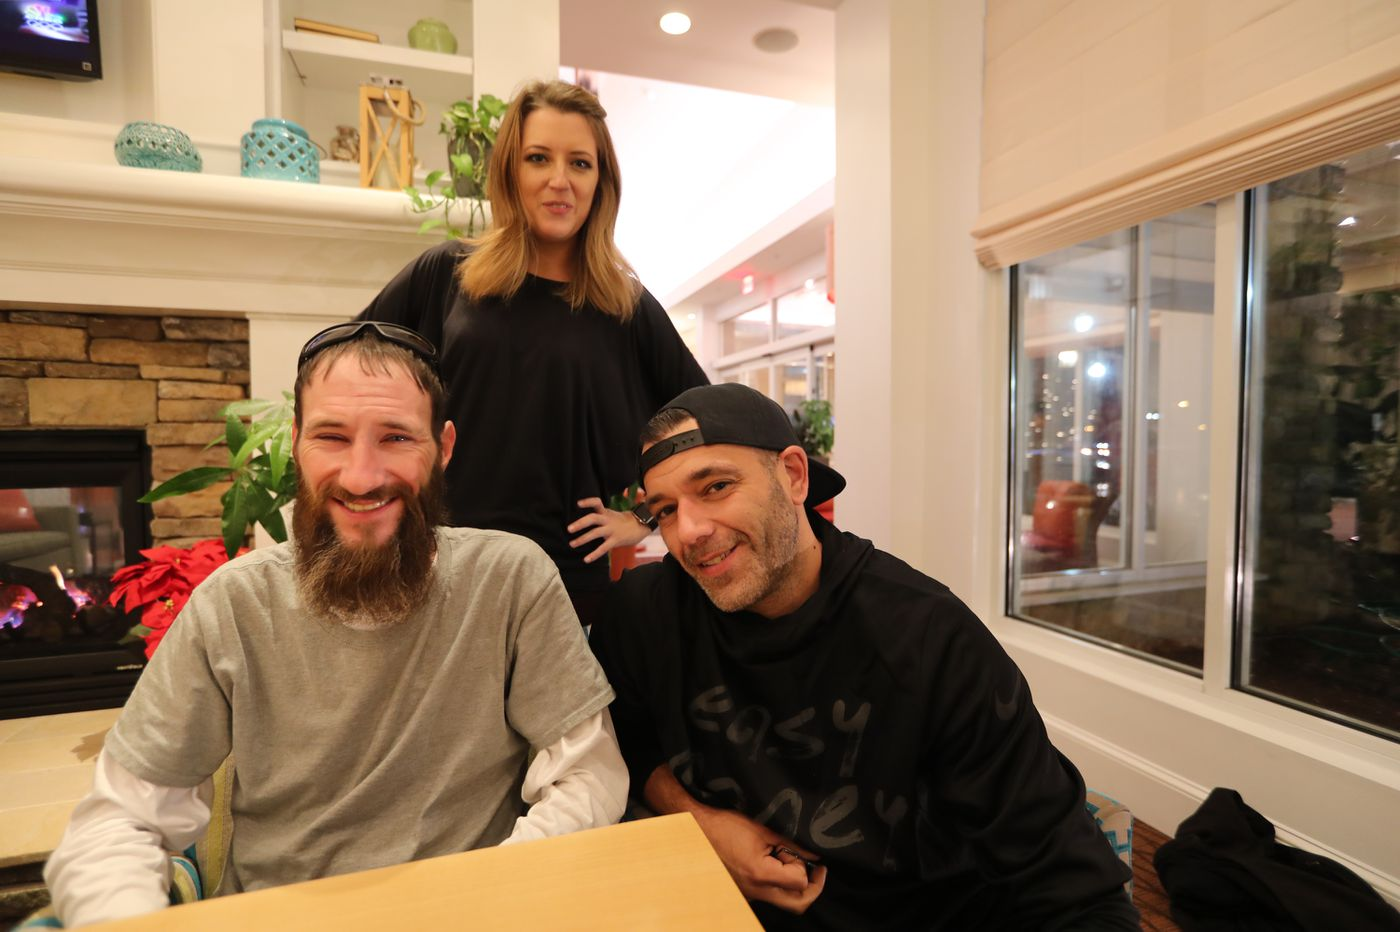 Homeless Johnny Bobbitt takes legal action against couple who started $400K fundraising campaign